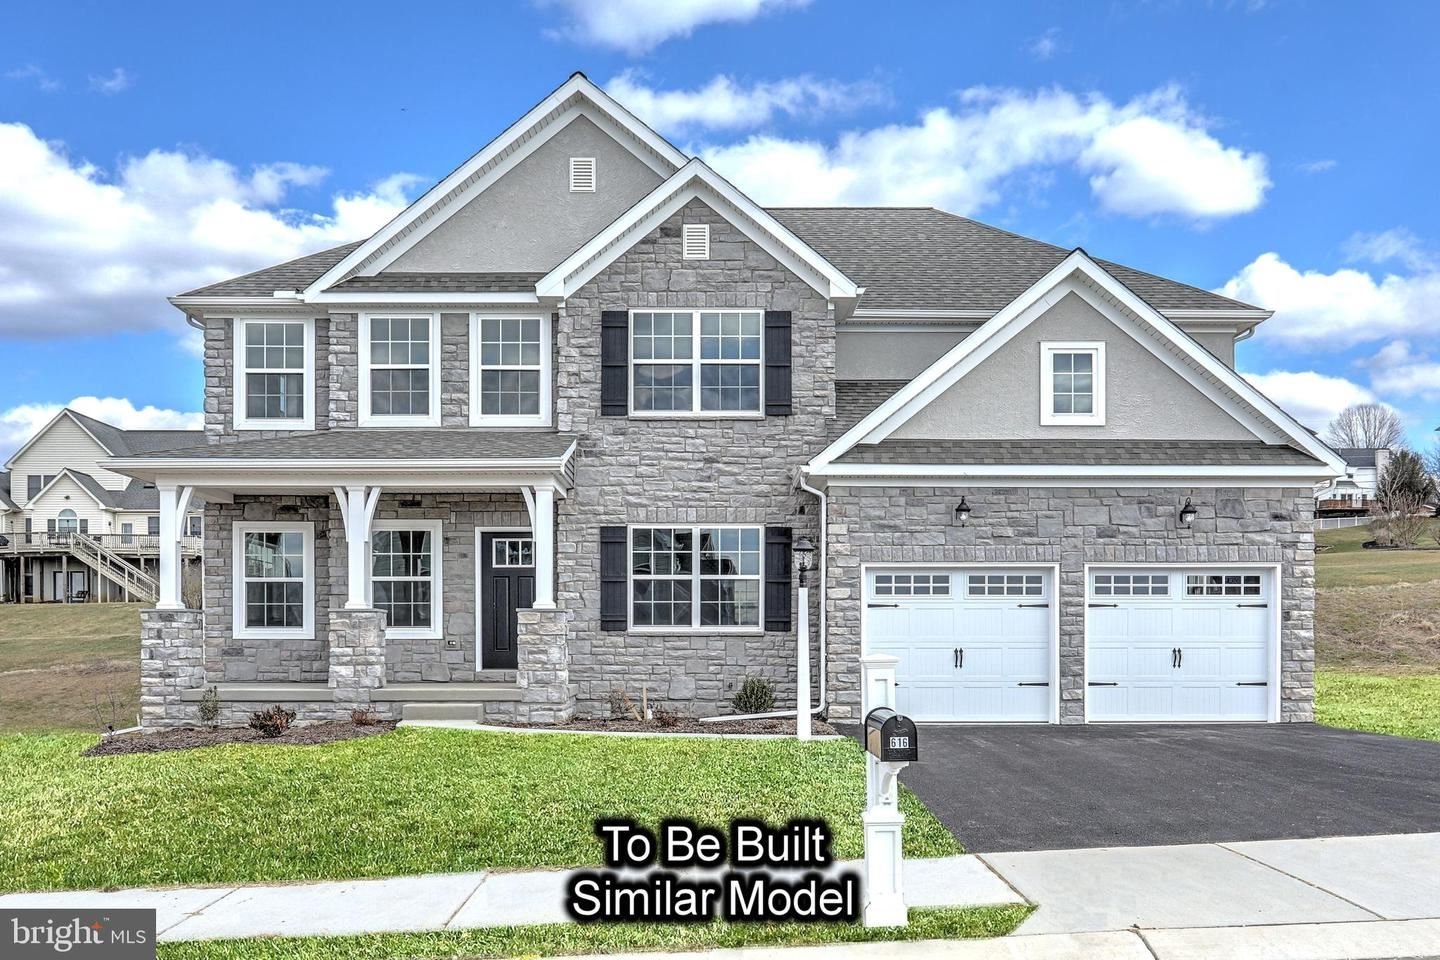 0 GREAT DAY CT, Westminster, MD 21157 - MLS#: MDCR200598